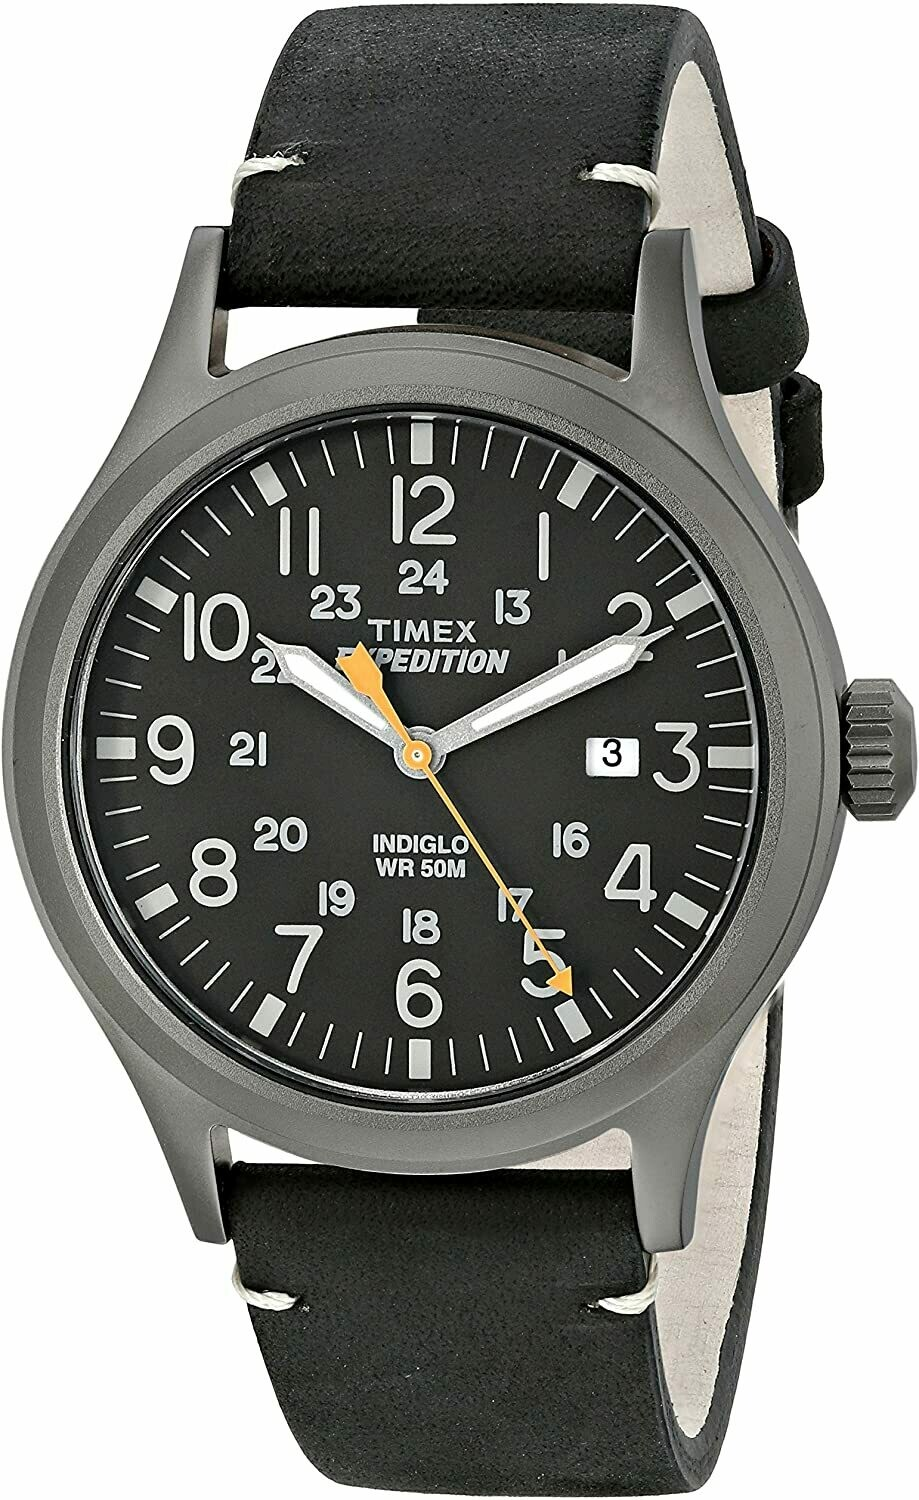 GTS STAINLESS EXPEDITION TIMEX WATCH